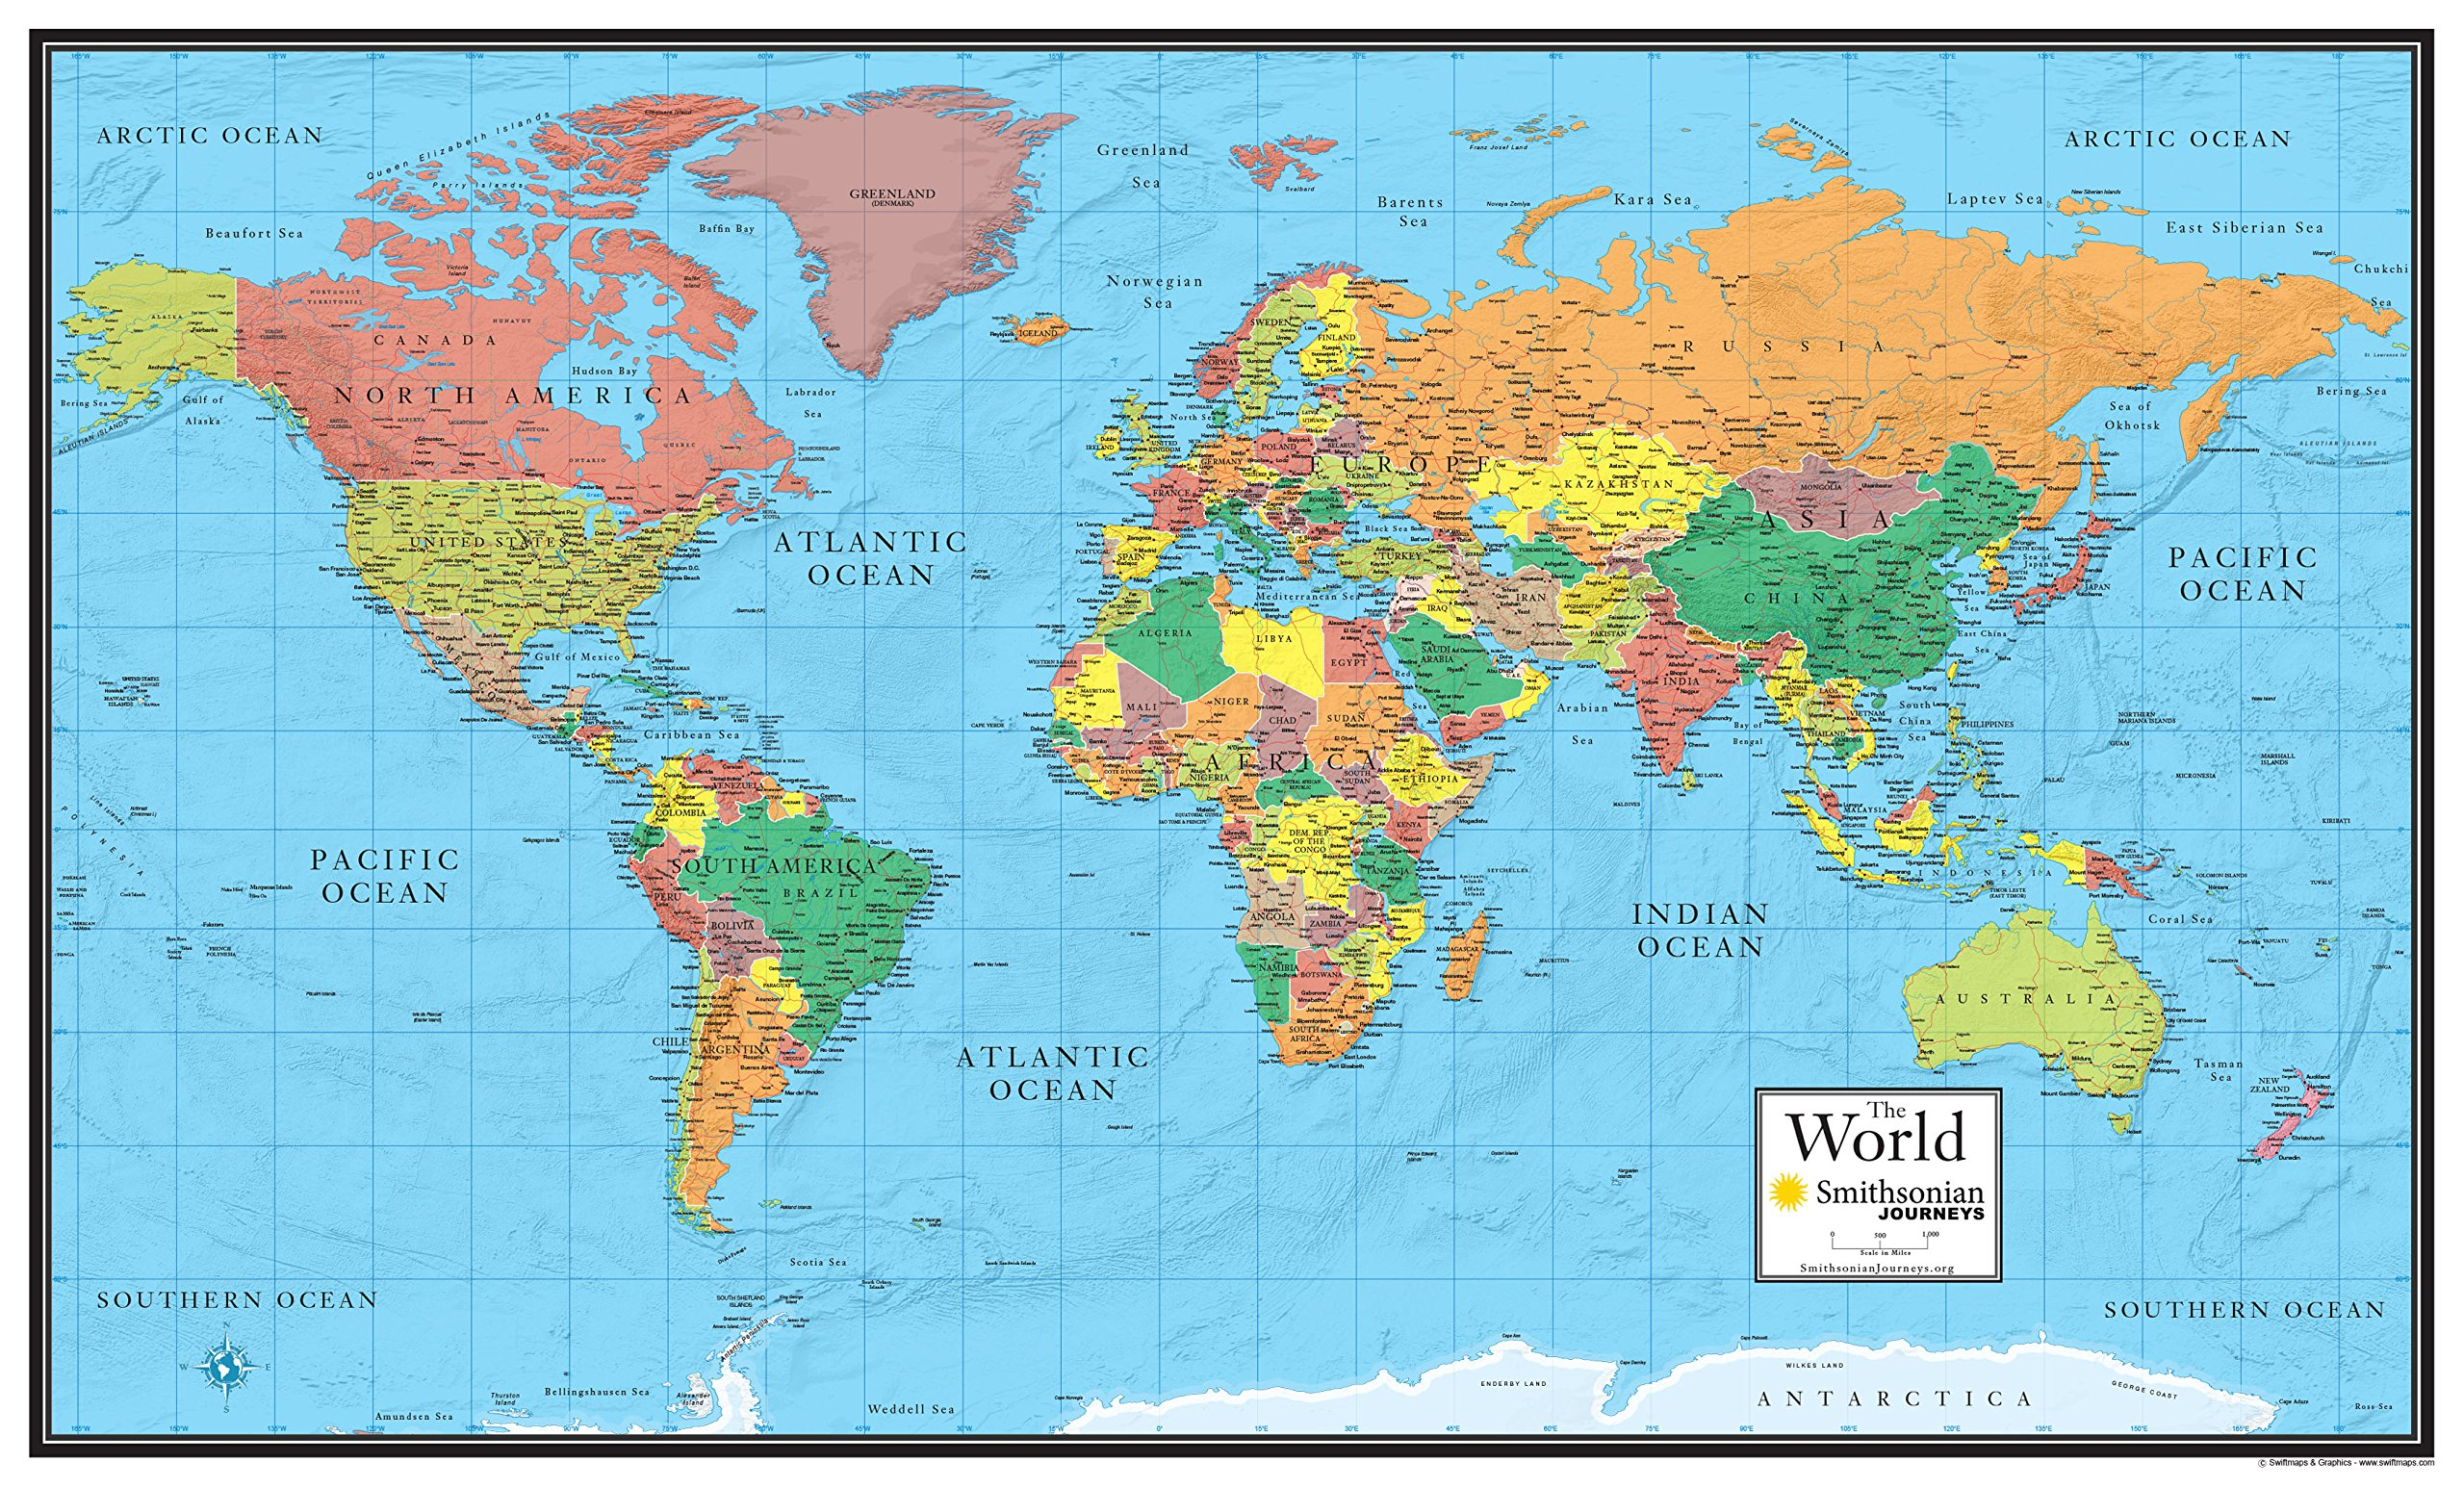 30x48 World Wall Map by Smithsonian Journeys - Blue Ocean Edition (30x48 Laminated)